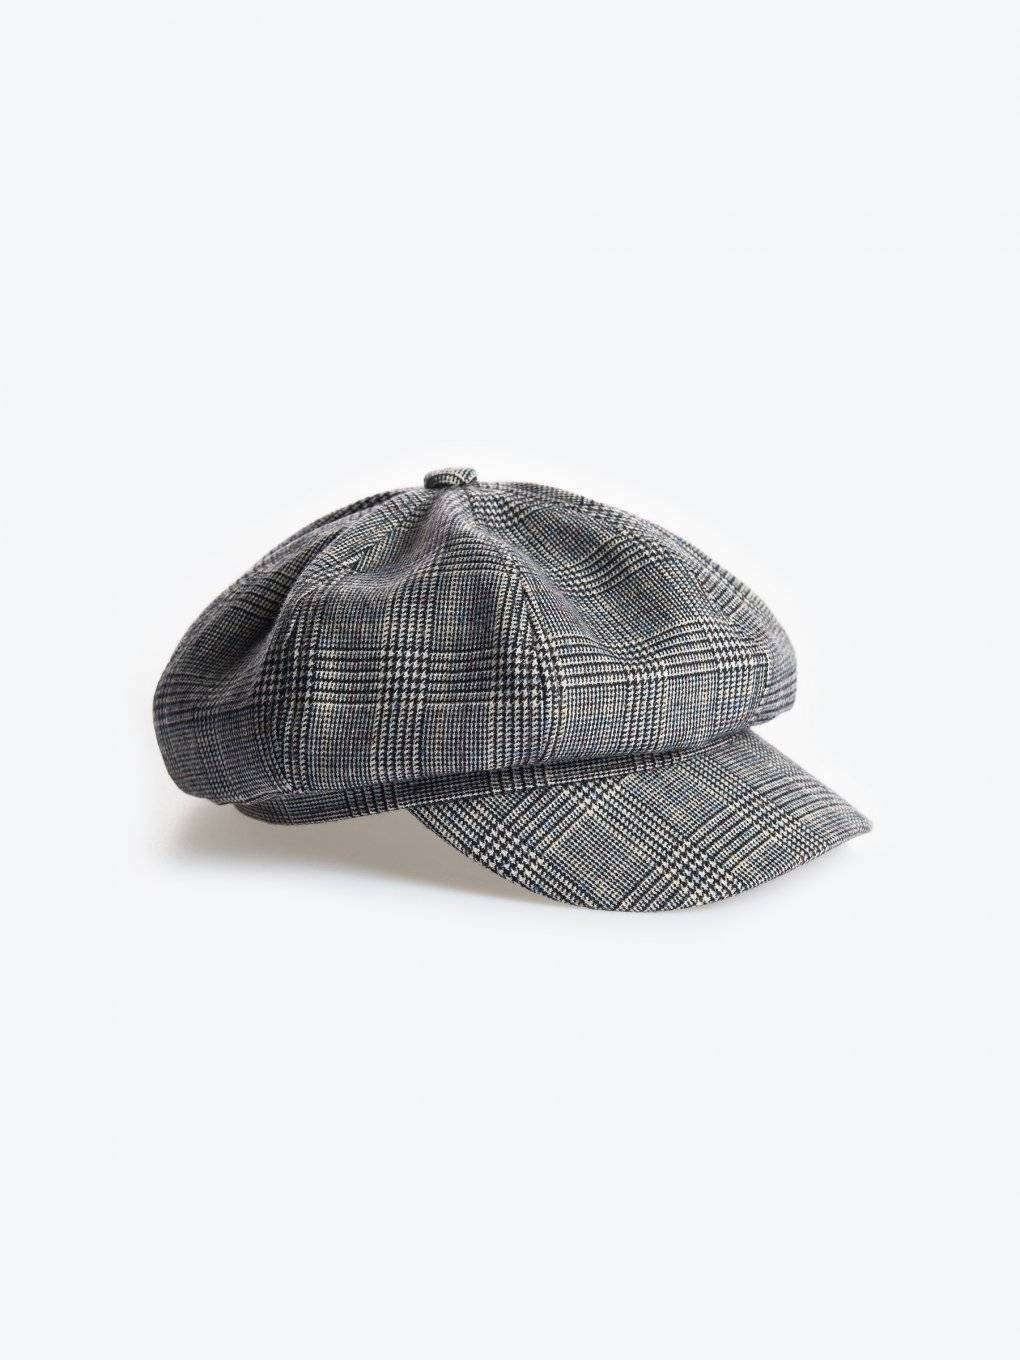 Plaid baker boy cap